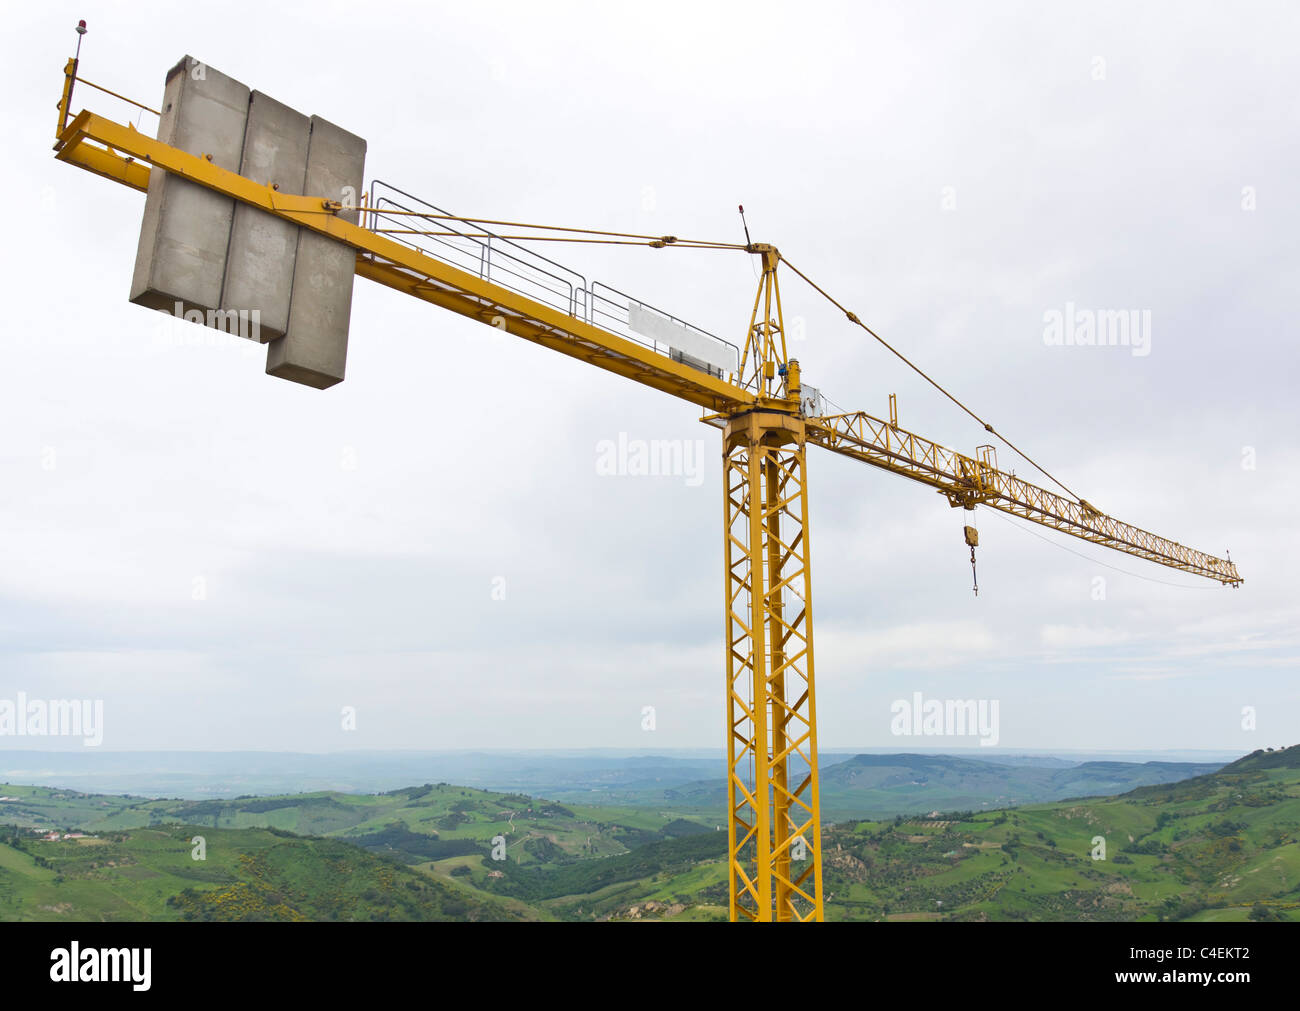 Massive concrete counterbalance weights on the boom arm of a